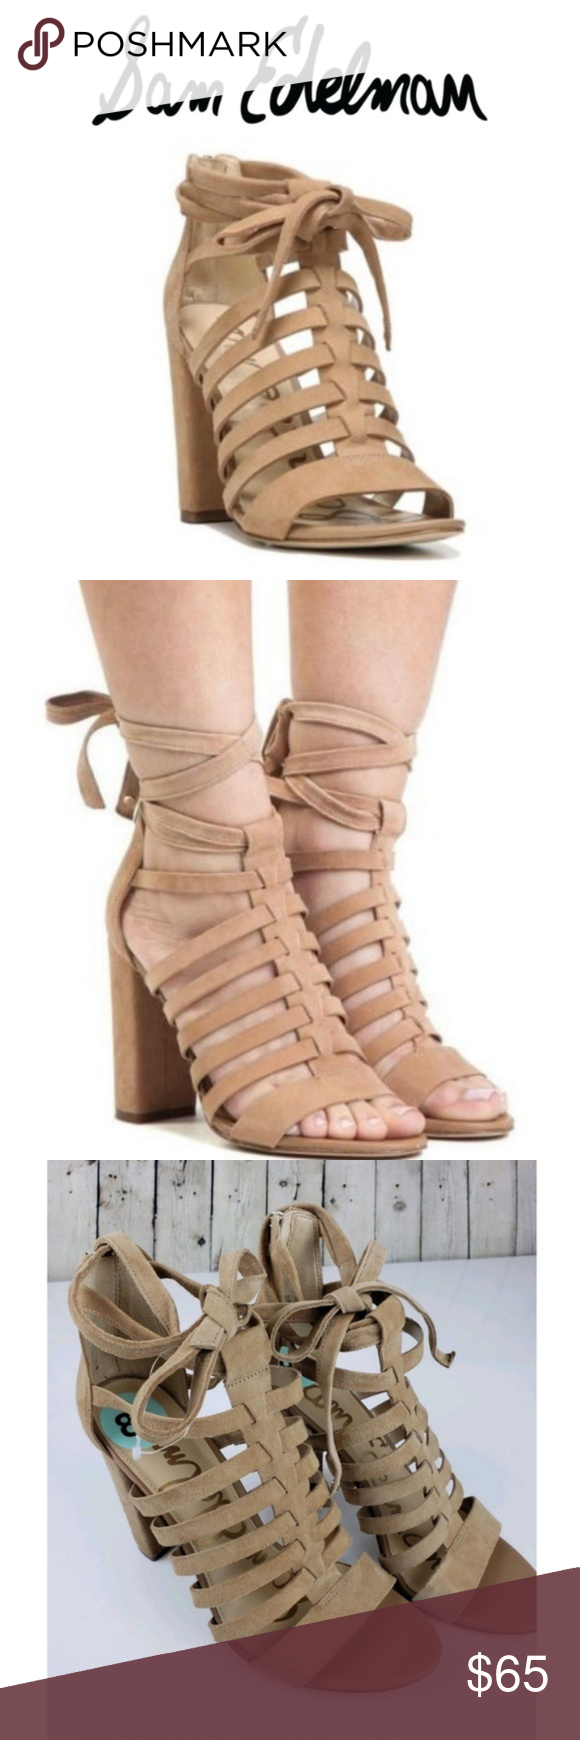 5b1c0a633a31eb Sam Edelman Heels Yarina Strappy Camel Suede 8.5 Sam Edelman Women s Heels Yarina  Strappy Sandal Camel Suede New Without Box Women s Size 8.5M Block heeled  ...